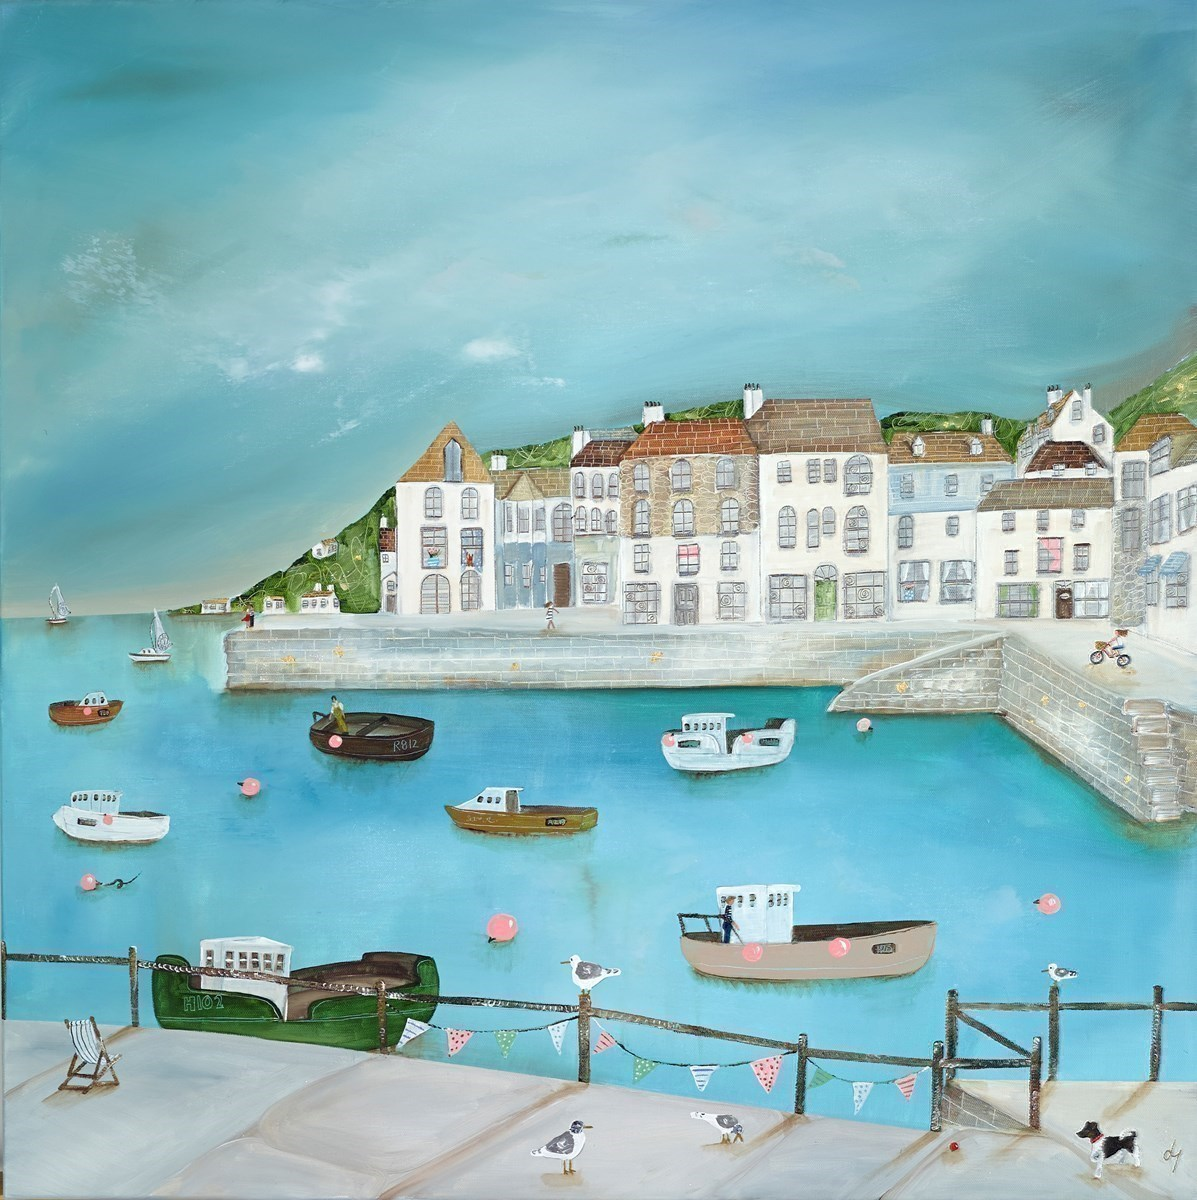 Free Little Gulls Are We by Lucy Young - Original on Stretch Canvas sized 32x32 inches. Available from Whitewall Galleries